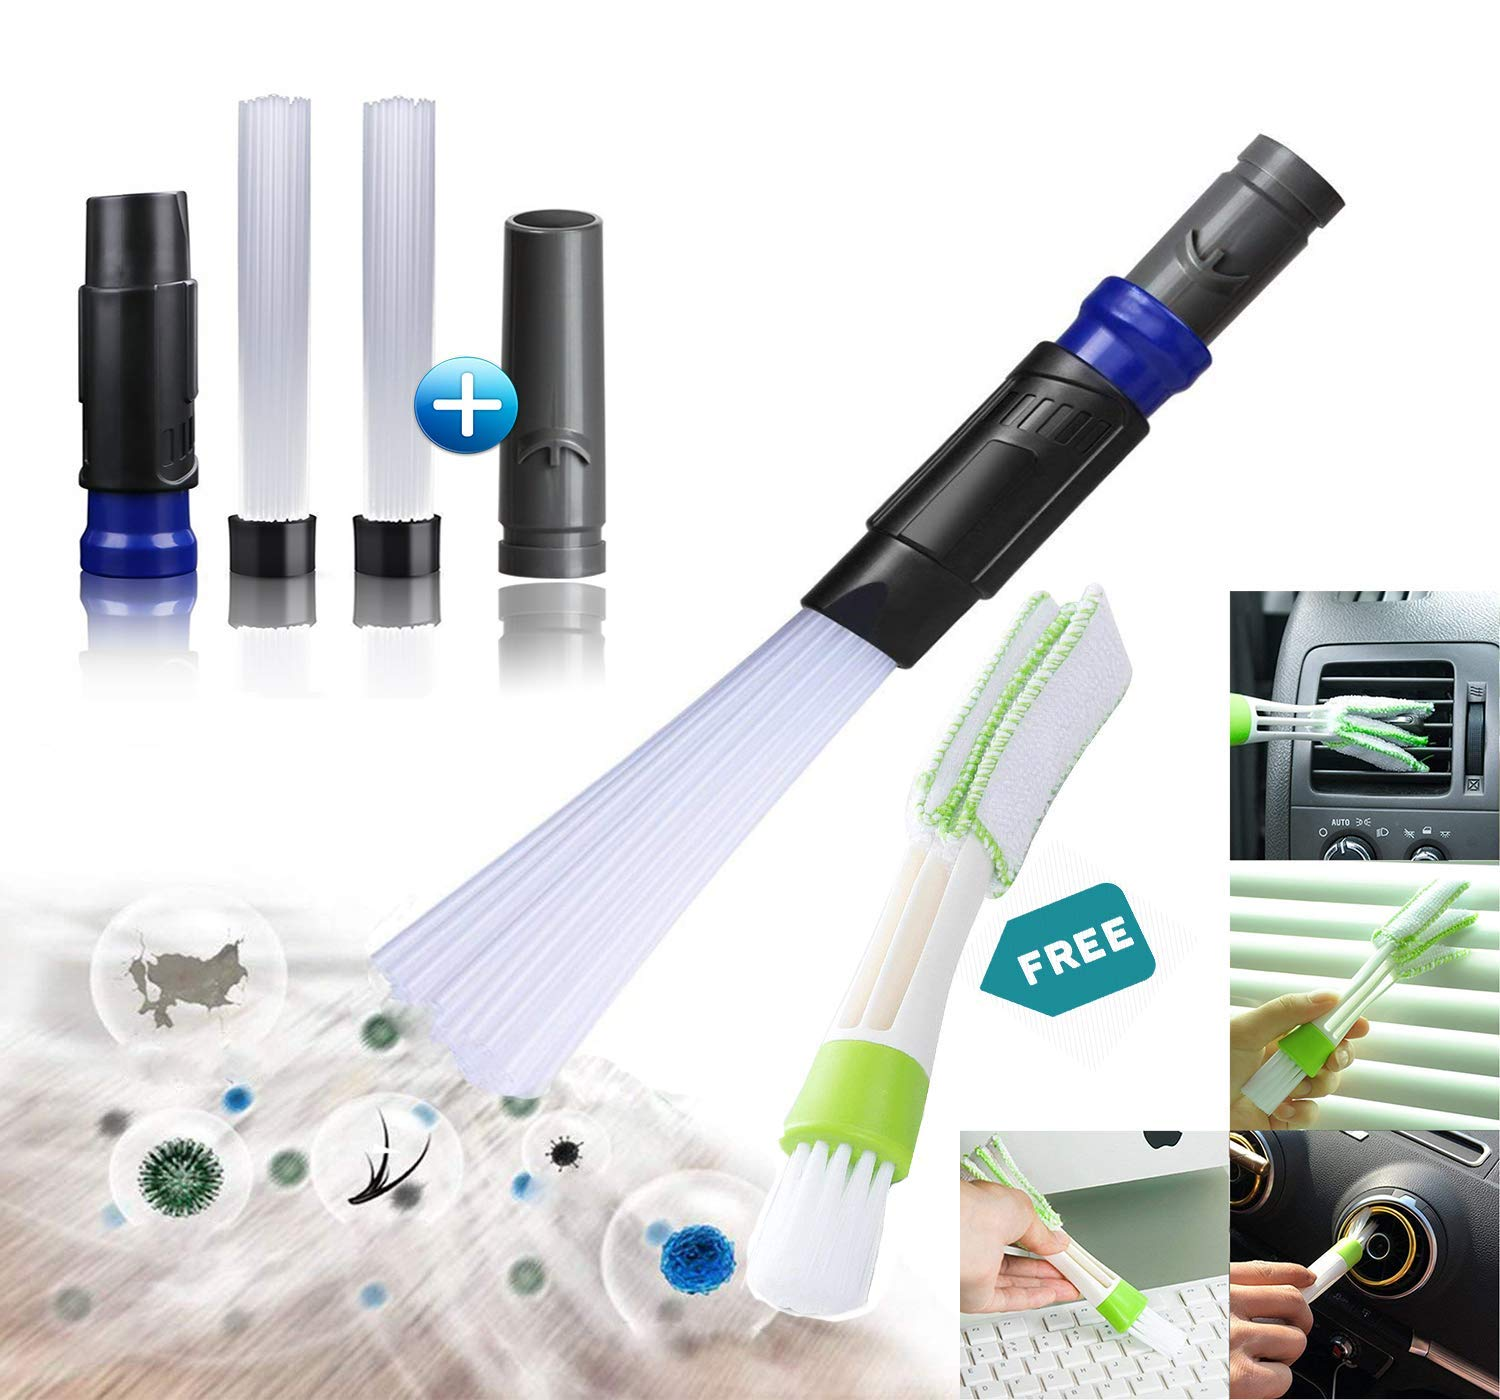 Dusty Brush, Vacuum Attachment Tiny Tubes, Dust Cleaning Sweeper Vacuum Attachments. Master Duster Cleaning Tool Flexible Access to Car,Corners,Keyboards, Drawers,Pets,Air Vents.